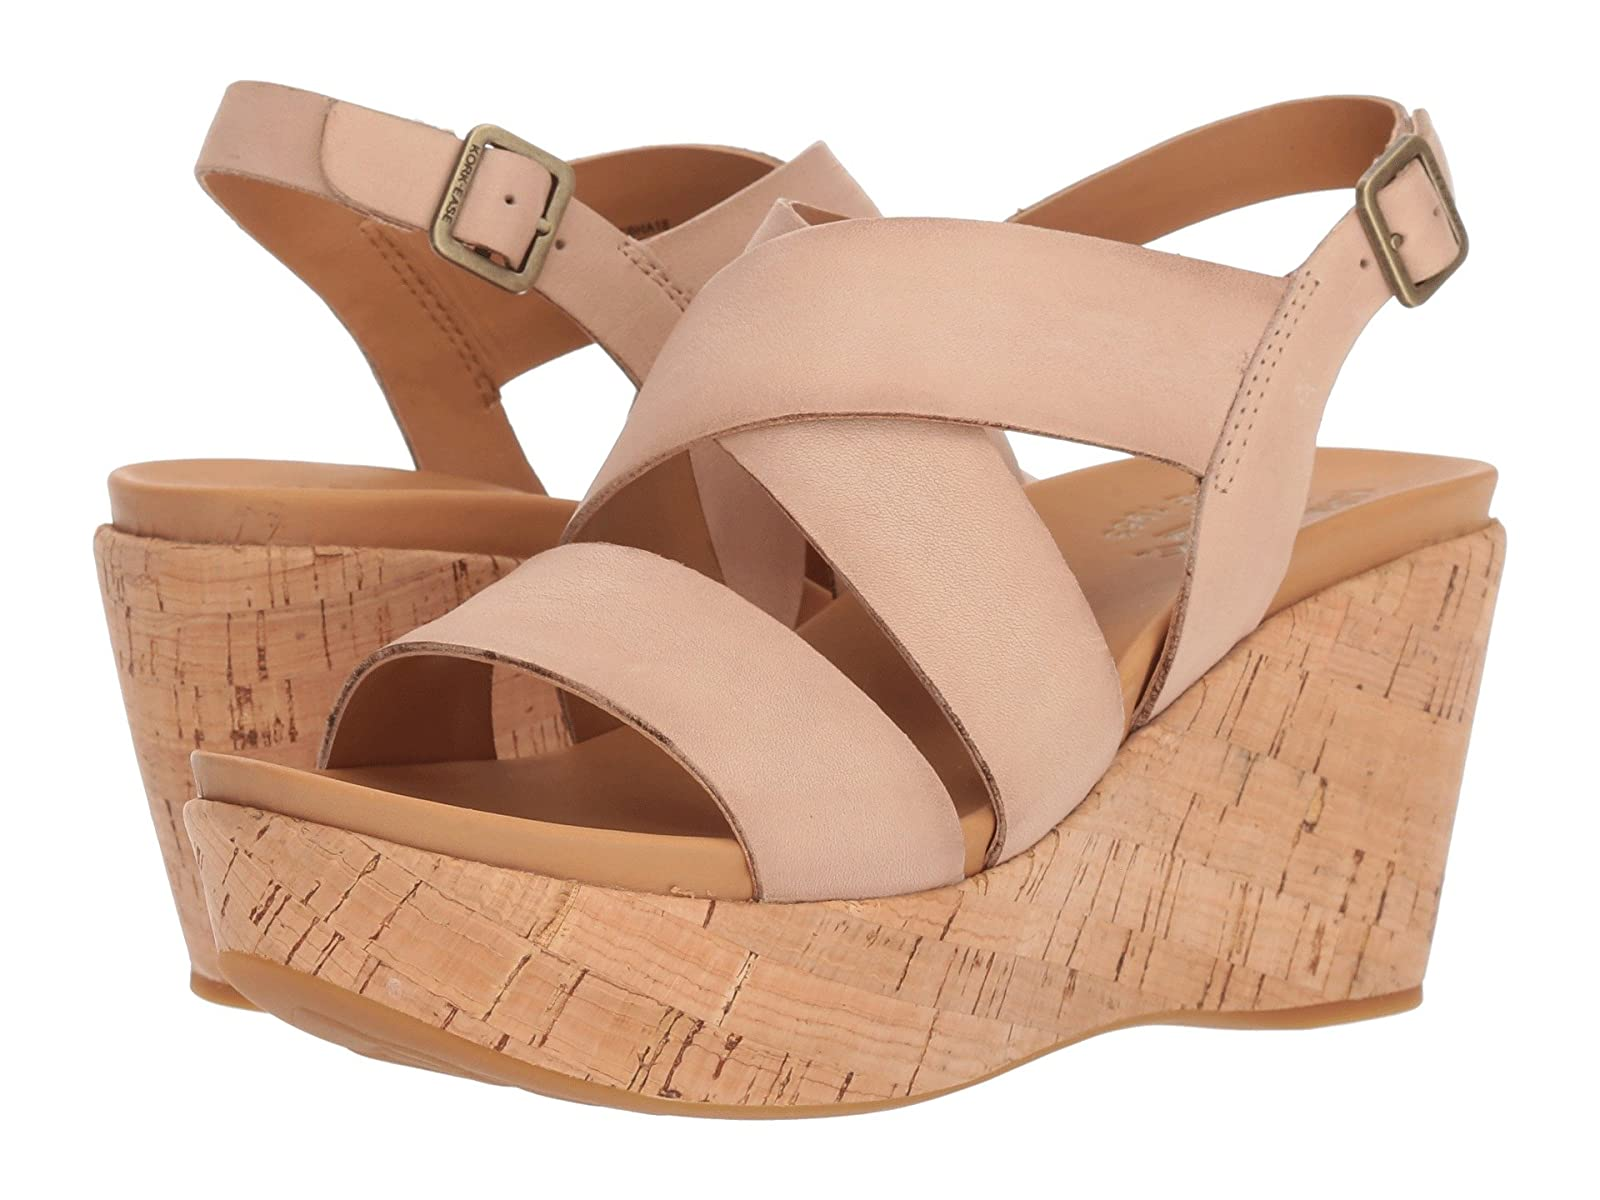 Kork-Ease AshcroftCheap and distinctive eye-catching shoes